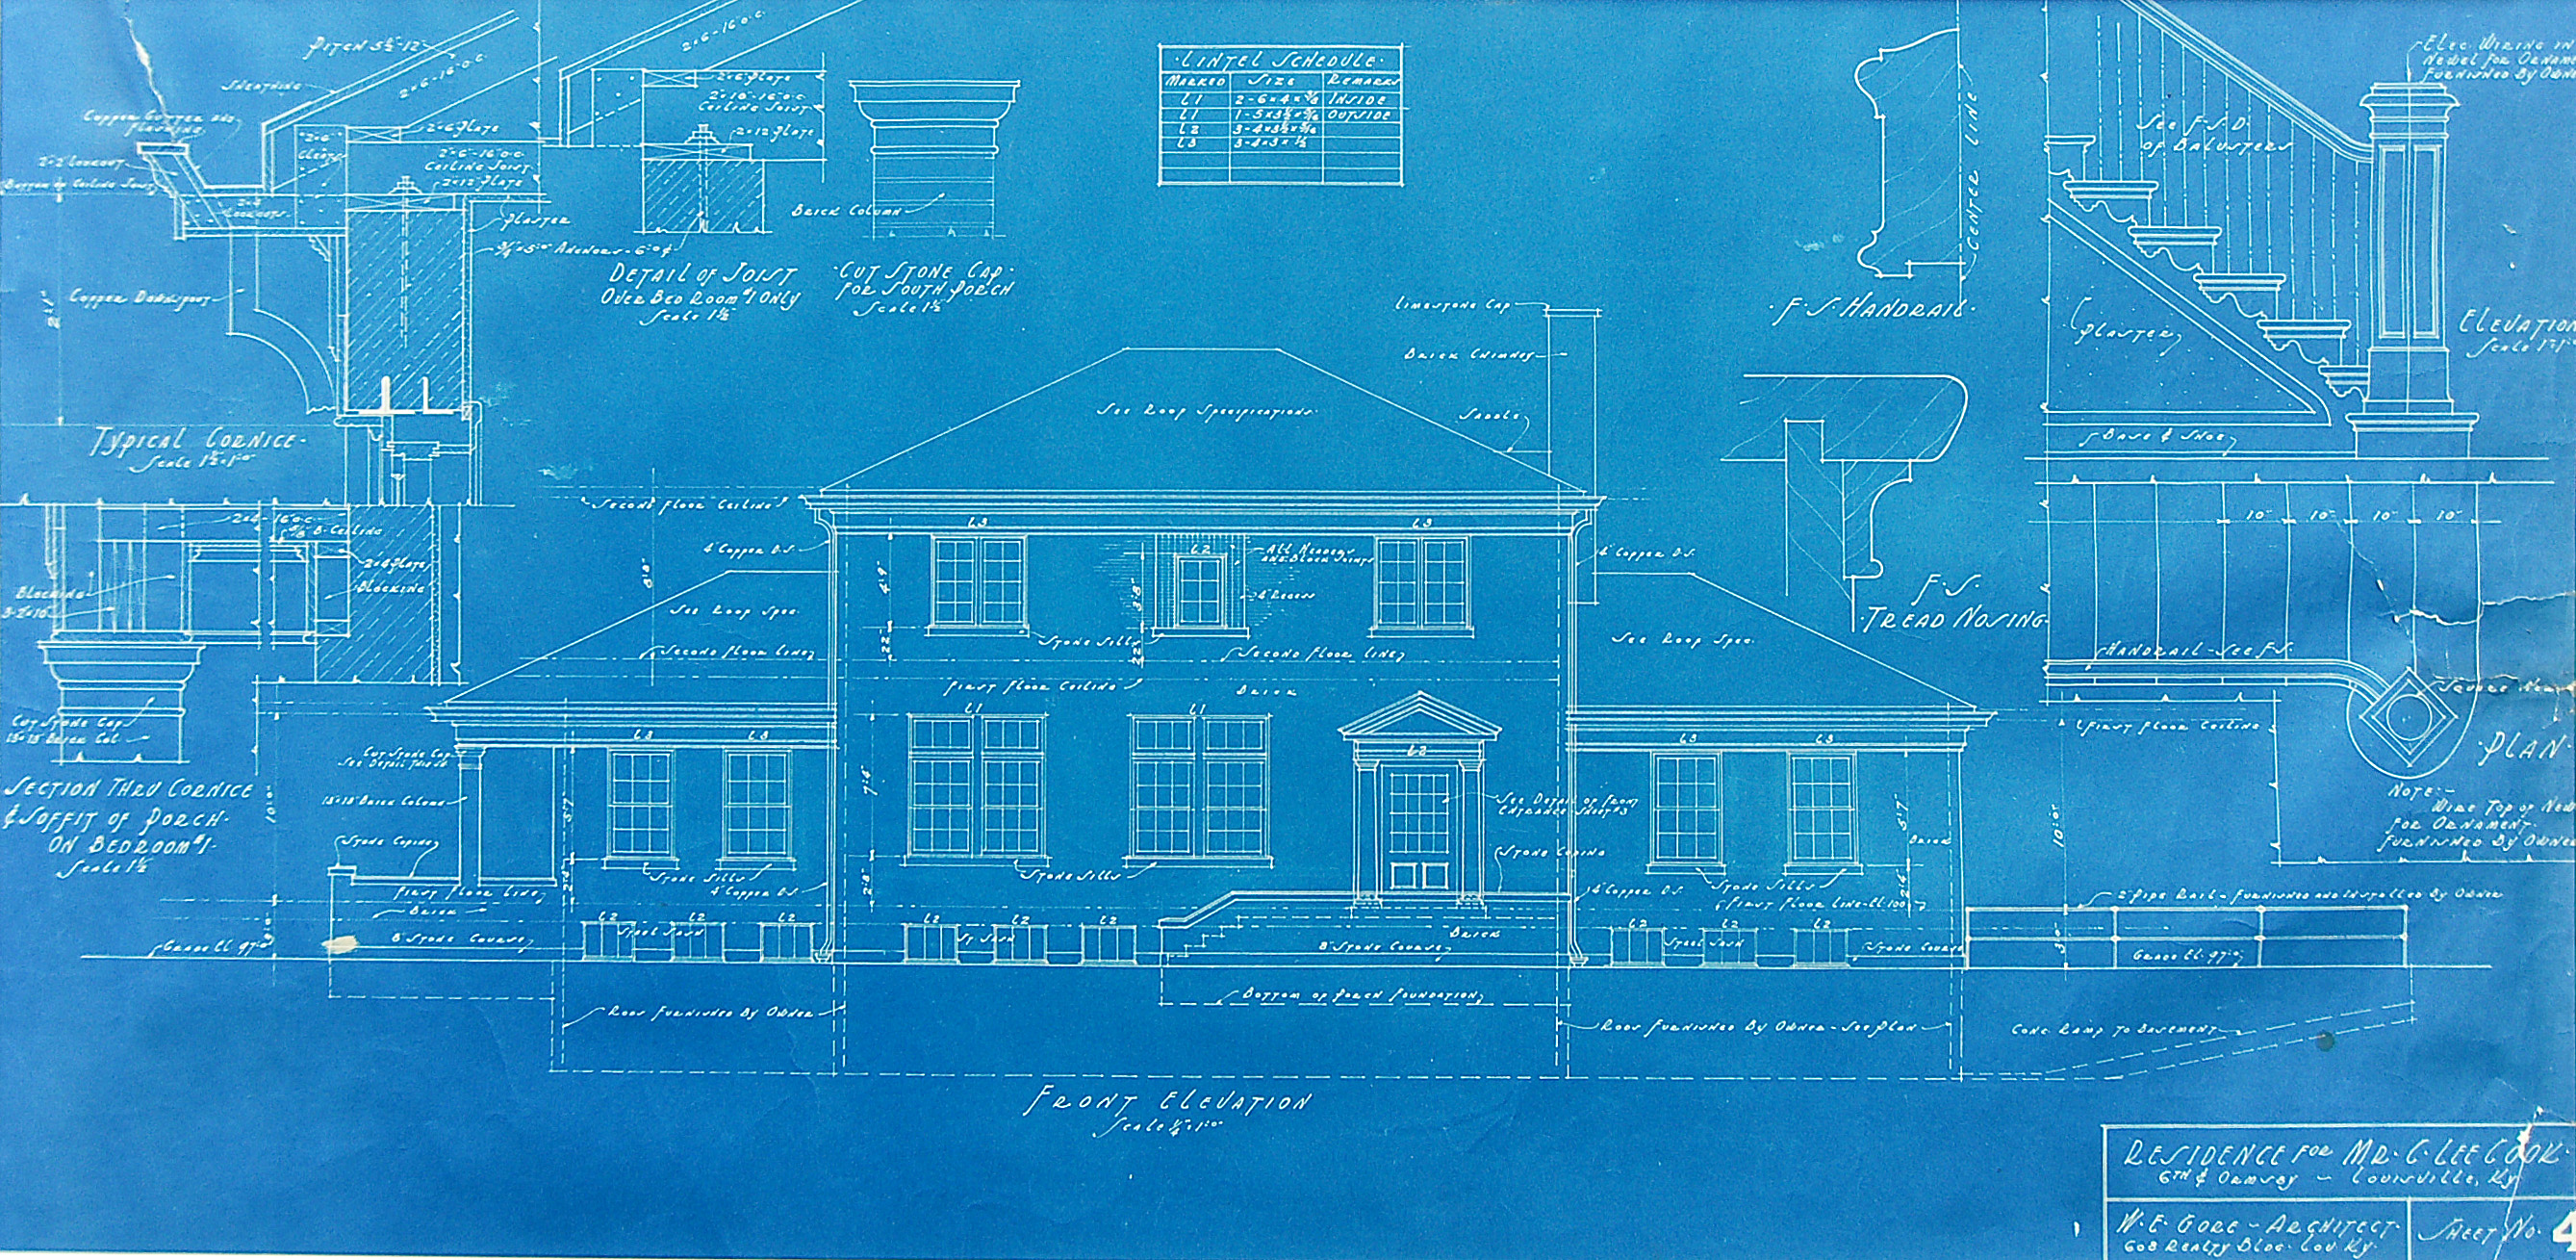 1244 sixth street the blueprints for Blueprints for my house